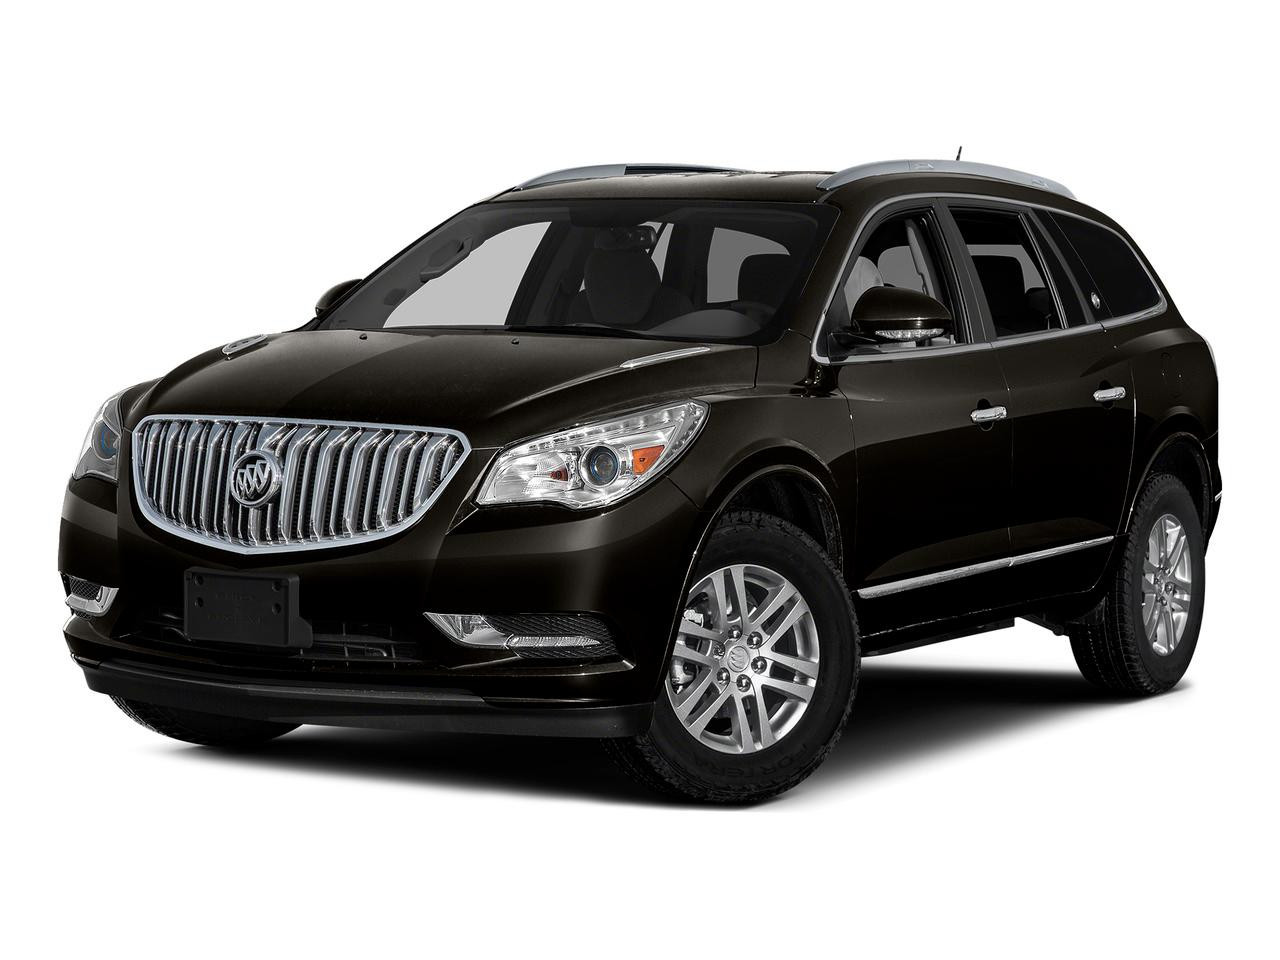 2016 Buick Enclave Vehicle Photo in FORT WORTH, TX 76116-6648